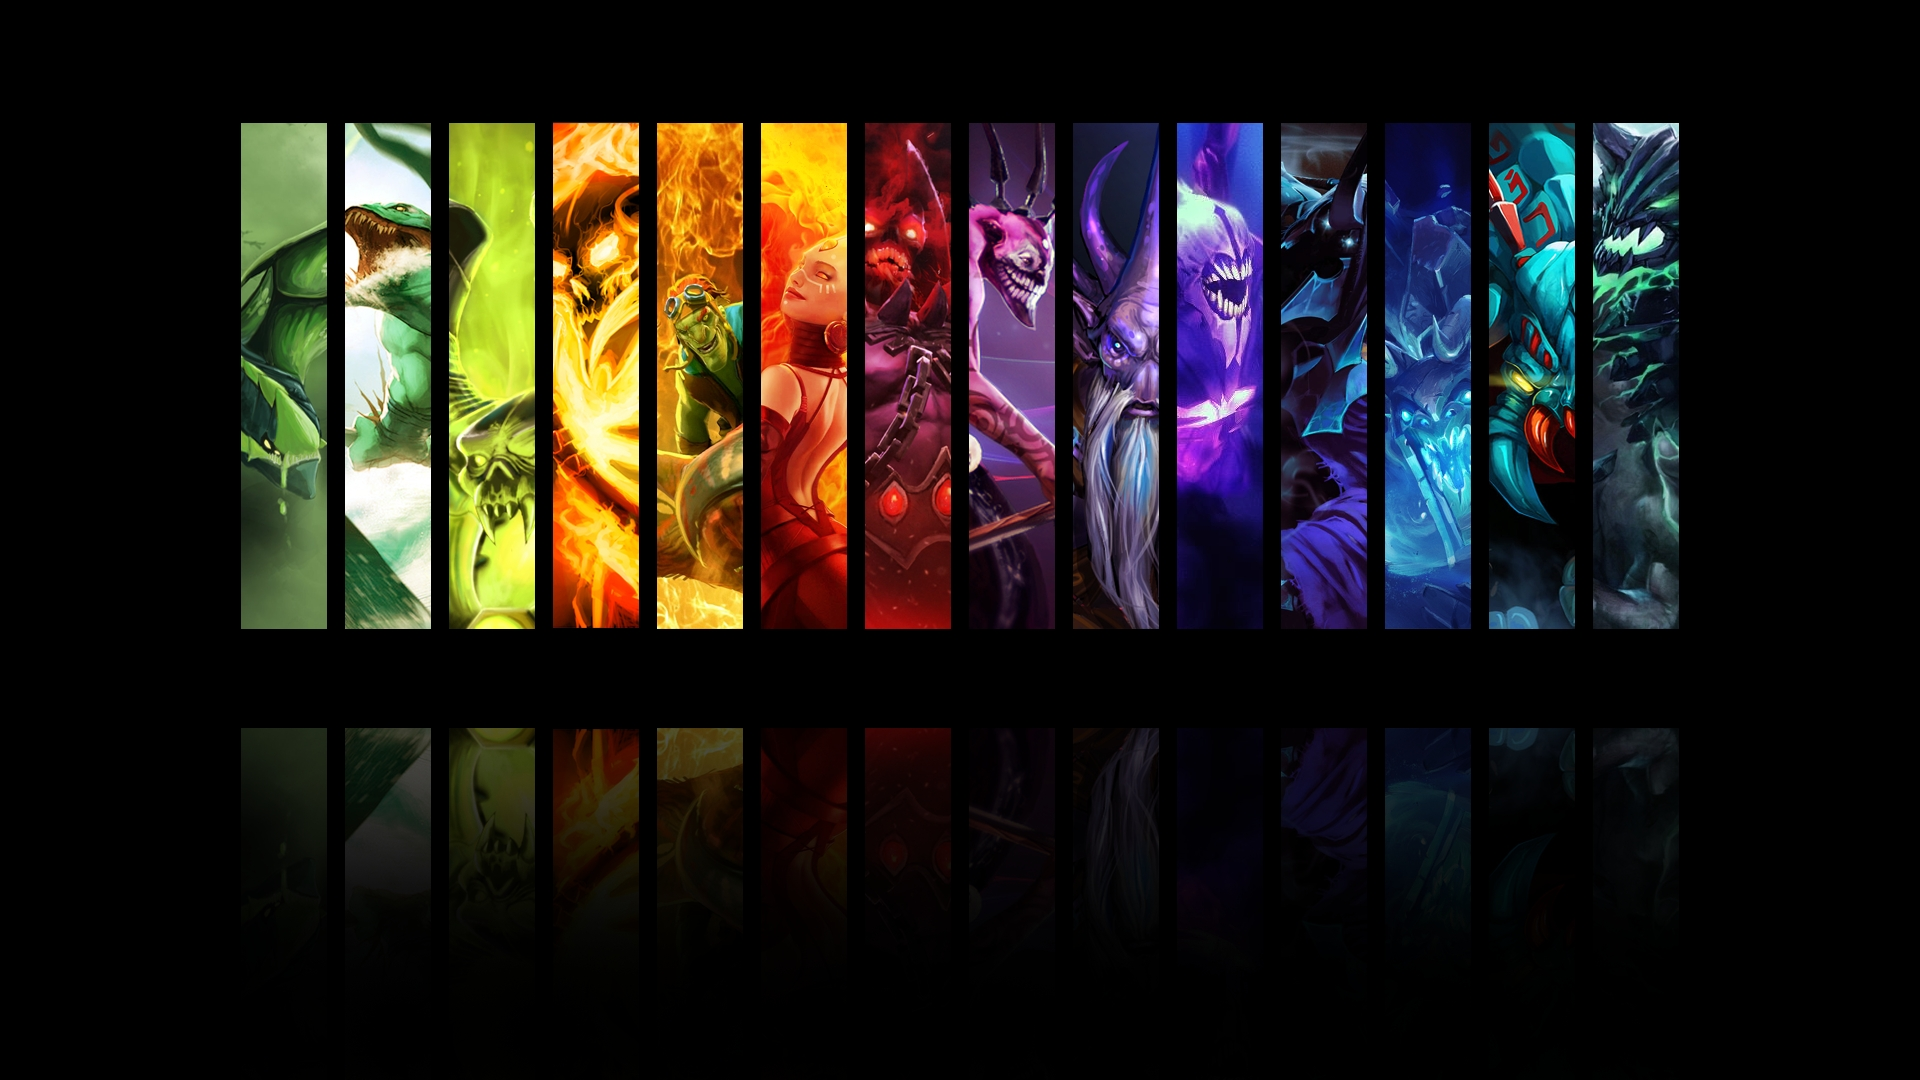 1440 Dual Monitor Wallpaper Posted By John Cunningham